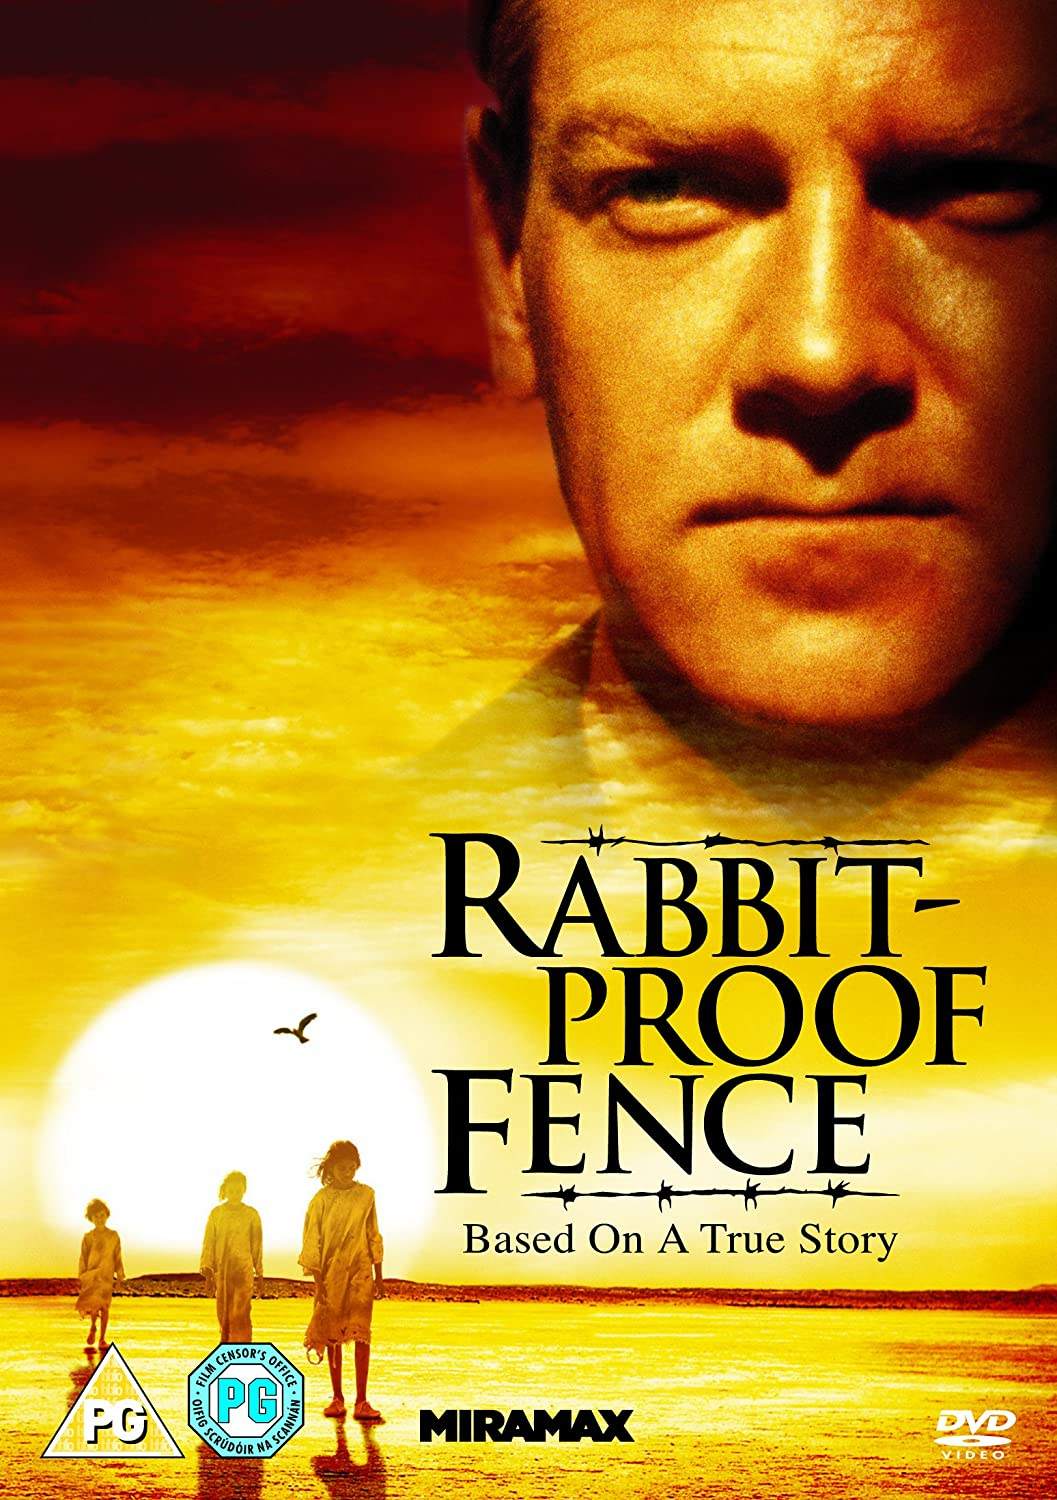 a comparison between two movies based on true stories skin by anthony fabian and rabbit proof fence